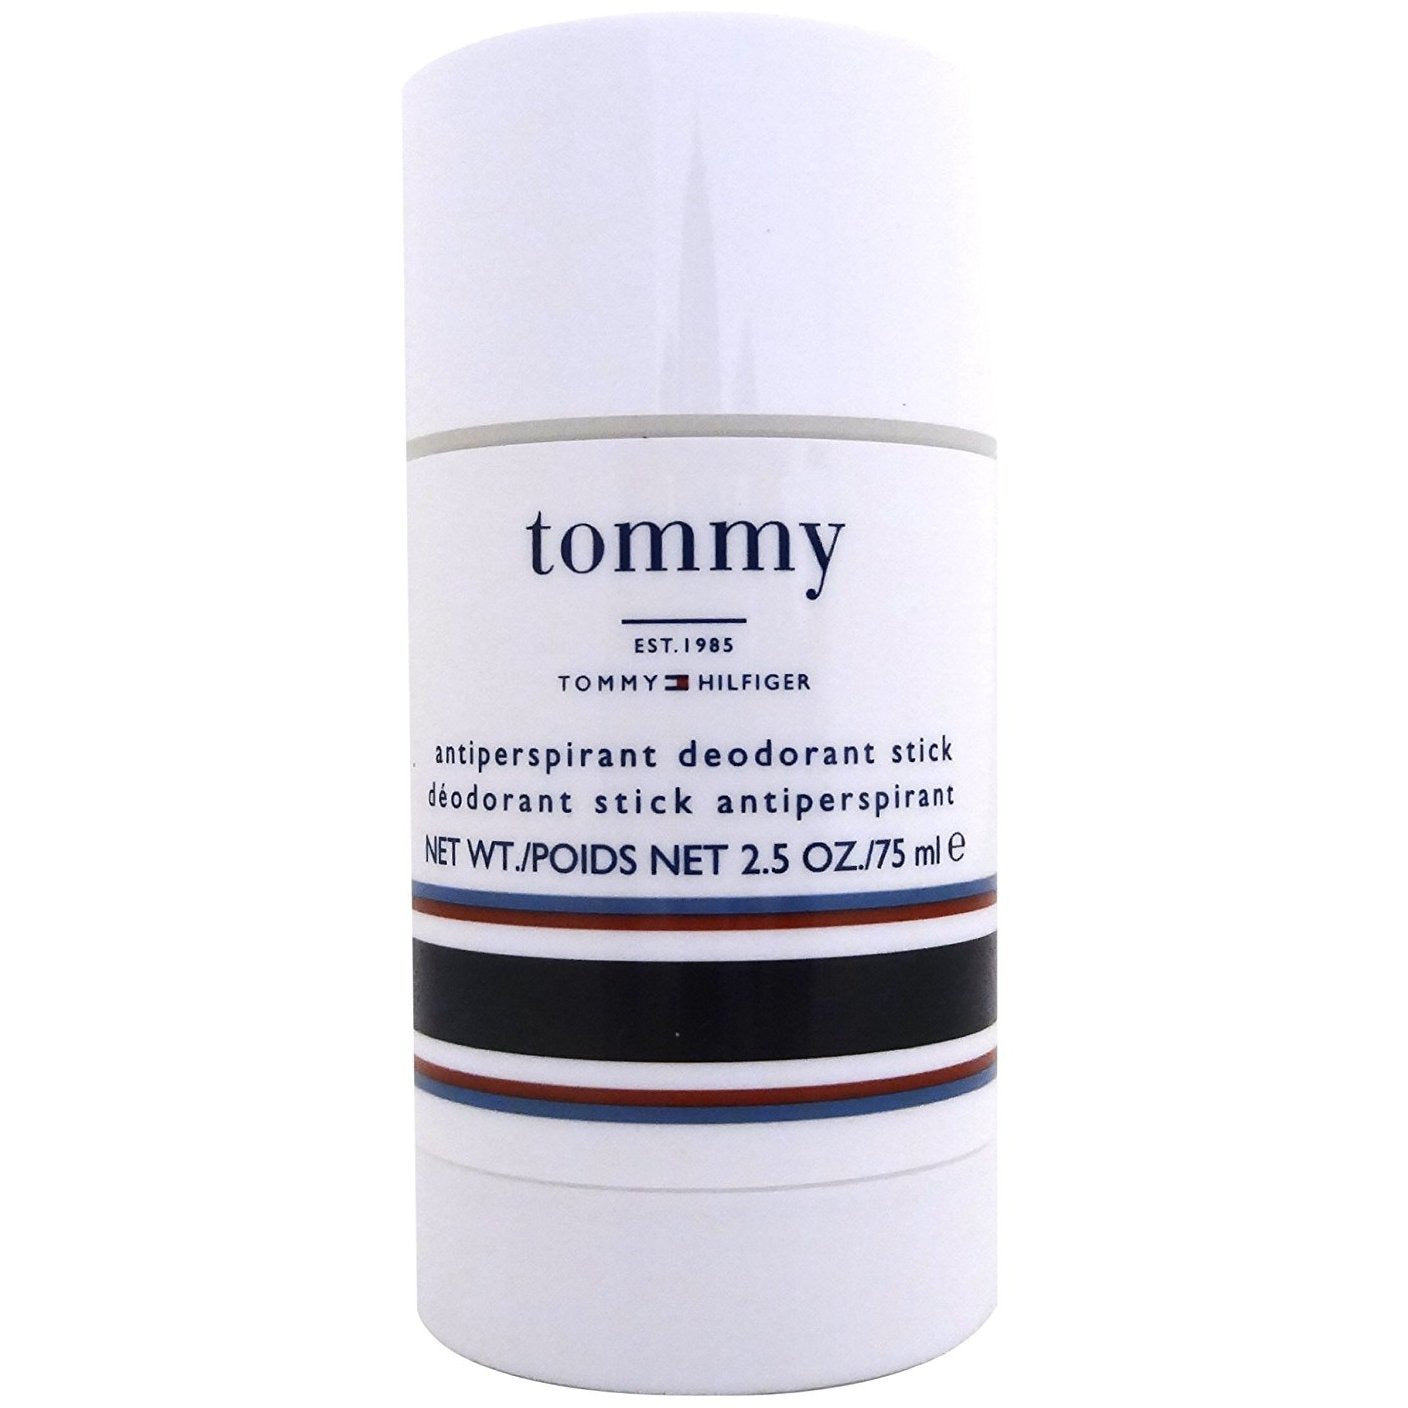 tommy-hilfiger-by-tommy-for-man-antiperspirant-deodorant-stick-2-5-oz